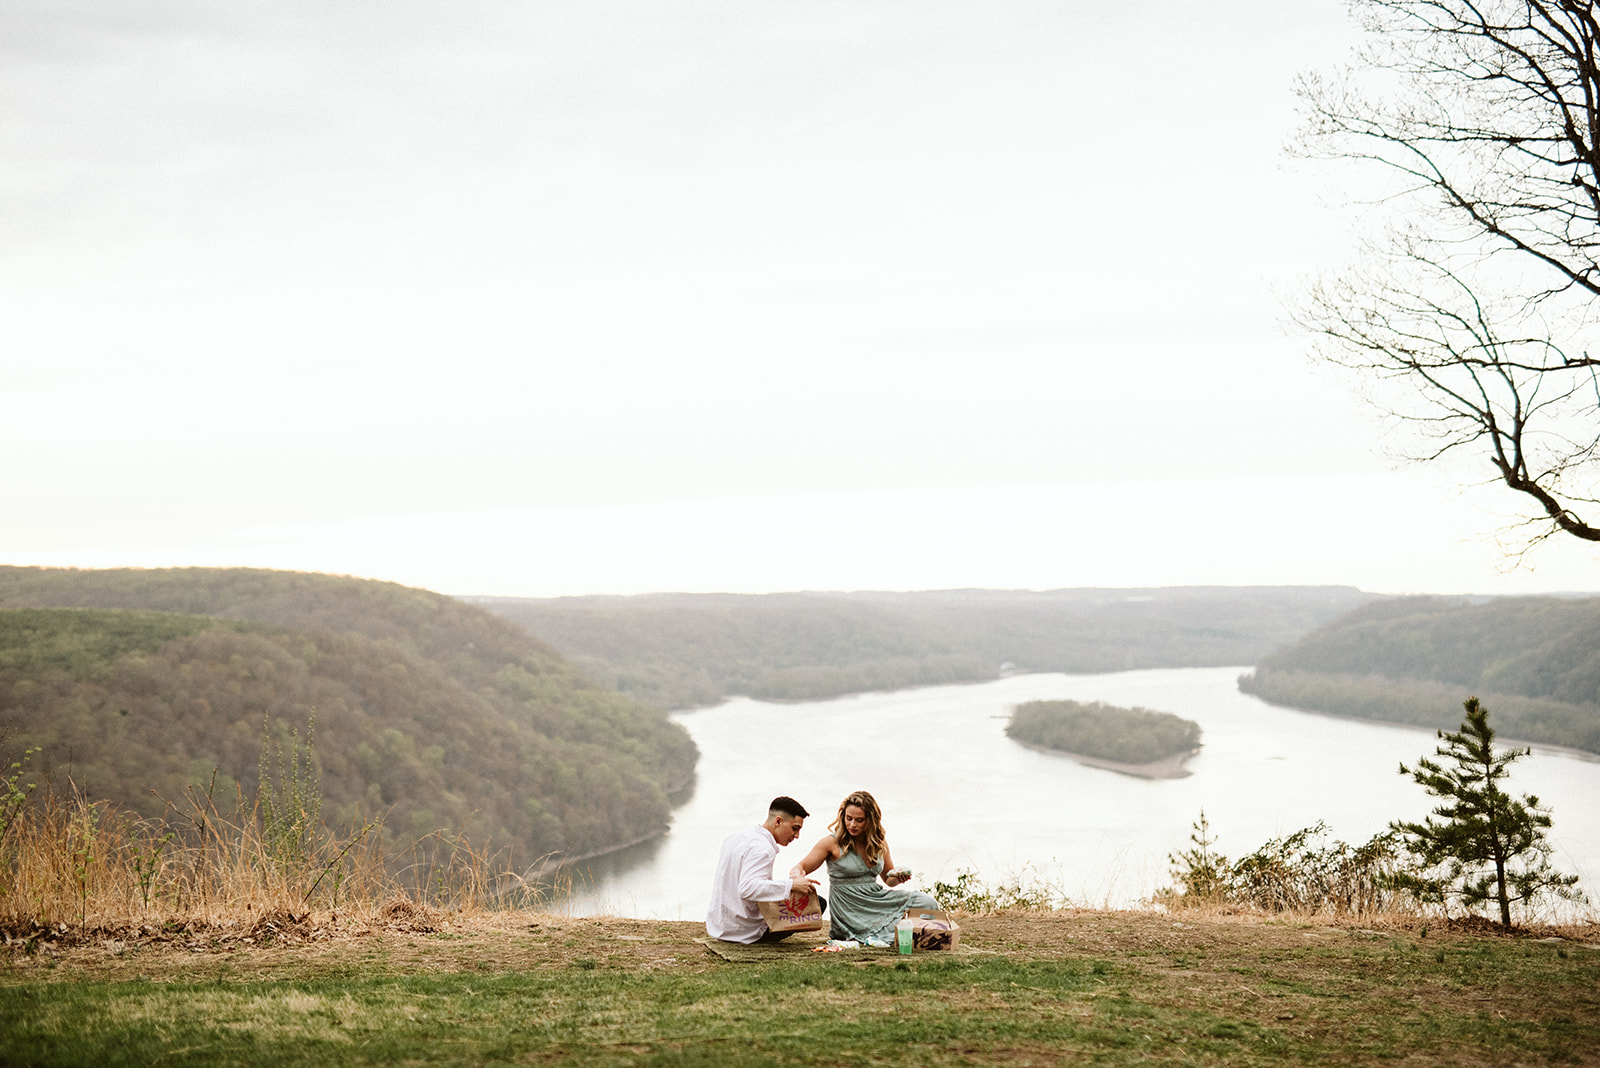 A couple enjoys a Taco Bell picnic at Pinnacle Overlook in Holtwood, Pennsylvania.